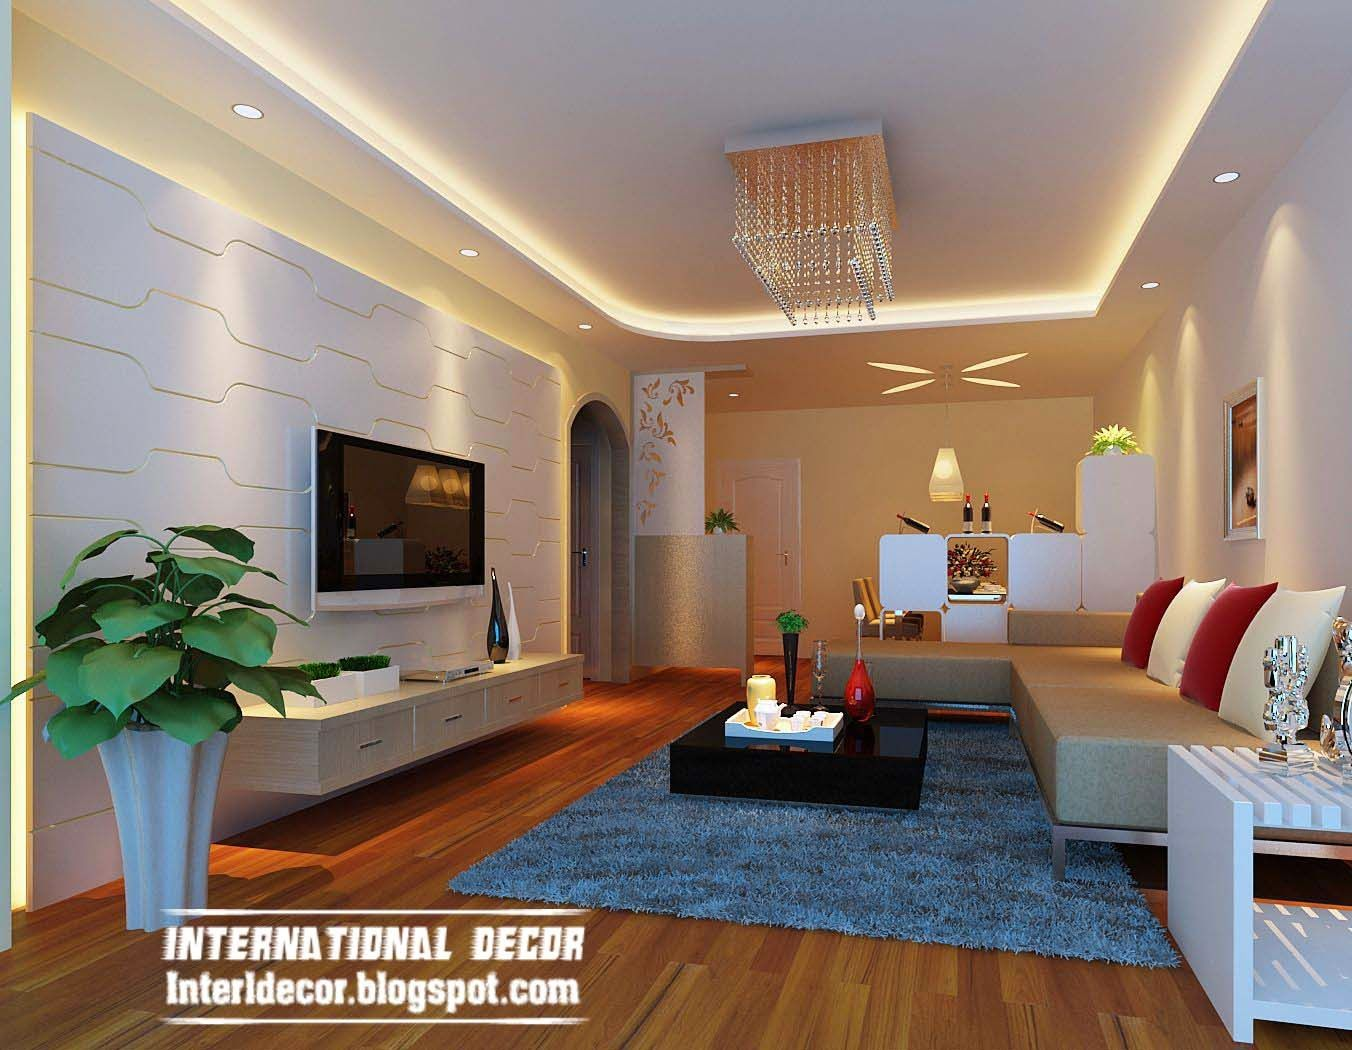 Top 10 suspended ceiling tiles lighting pop designs for living top 20 suspended ceiling tiles lighting pop designs for living room 2015 part 2 dailygadgetfo Images